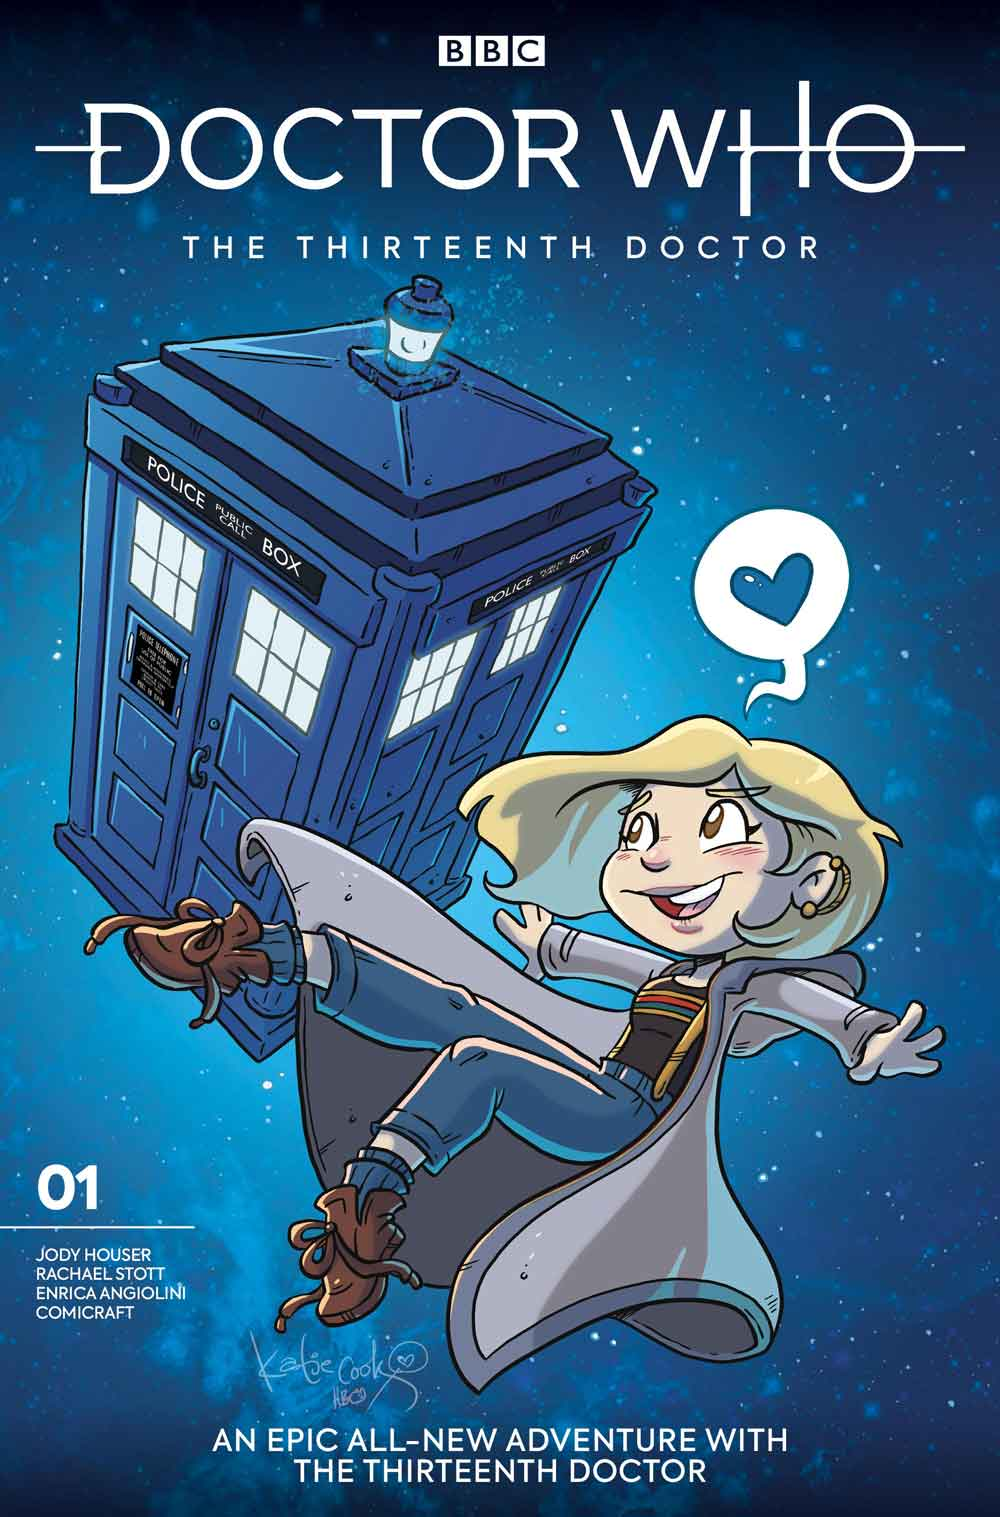 DW13D_1_Cover_I_KATIE_COOK